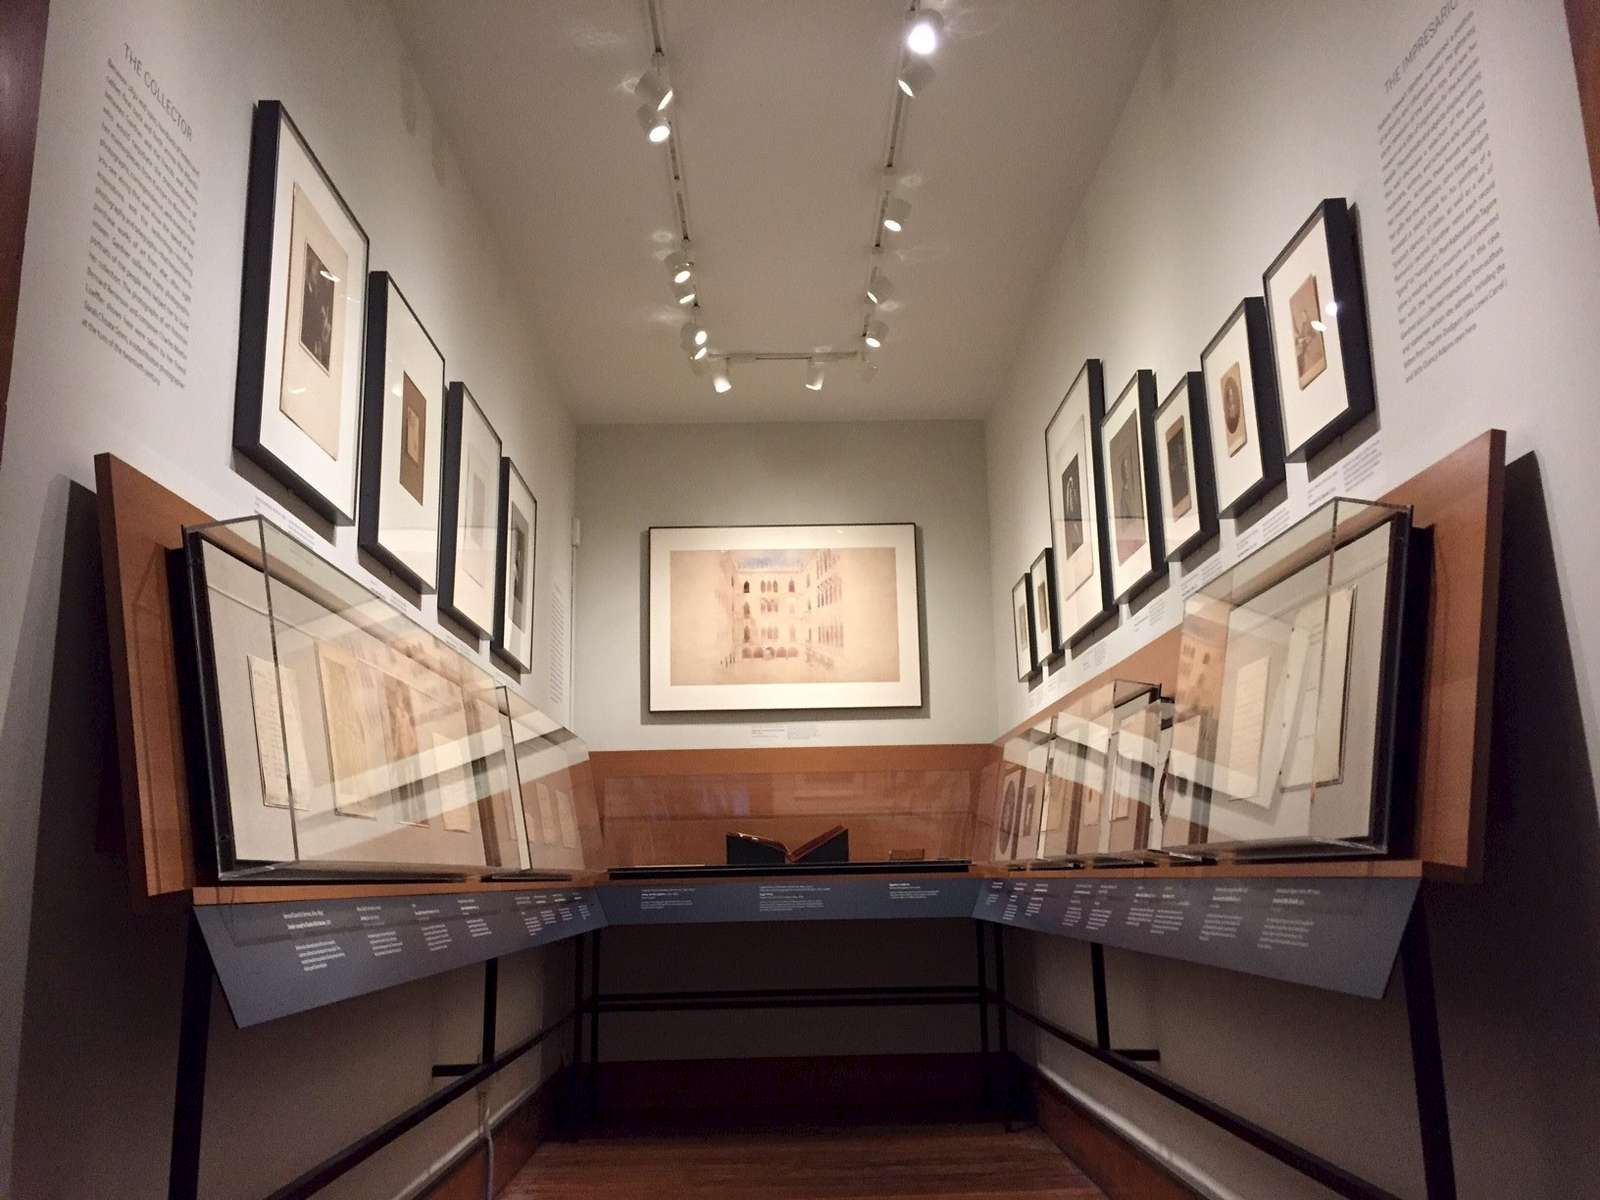 IKD was hired for the exhibition, graphic, casework design for the off the wall exhibition at the Isabella Gardner Museum. A portion of the exhibition is held in the old palace where ikd, was responsible for renovation of the small gallery that previously was used as a coat check area.